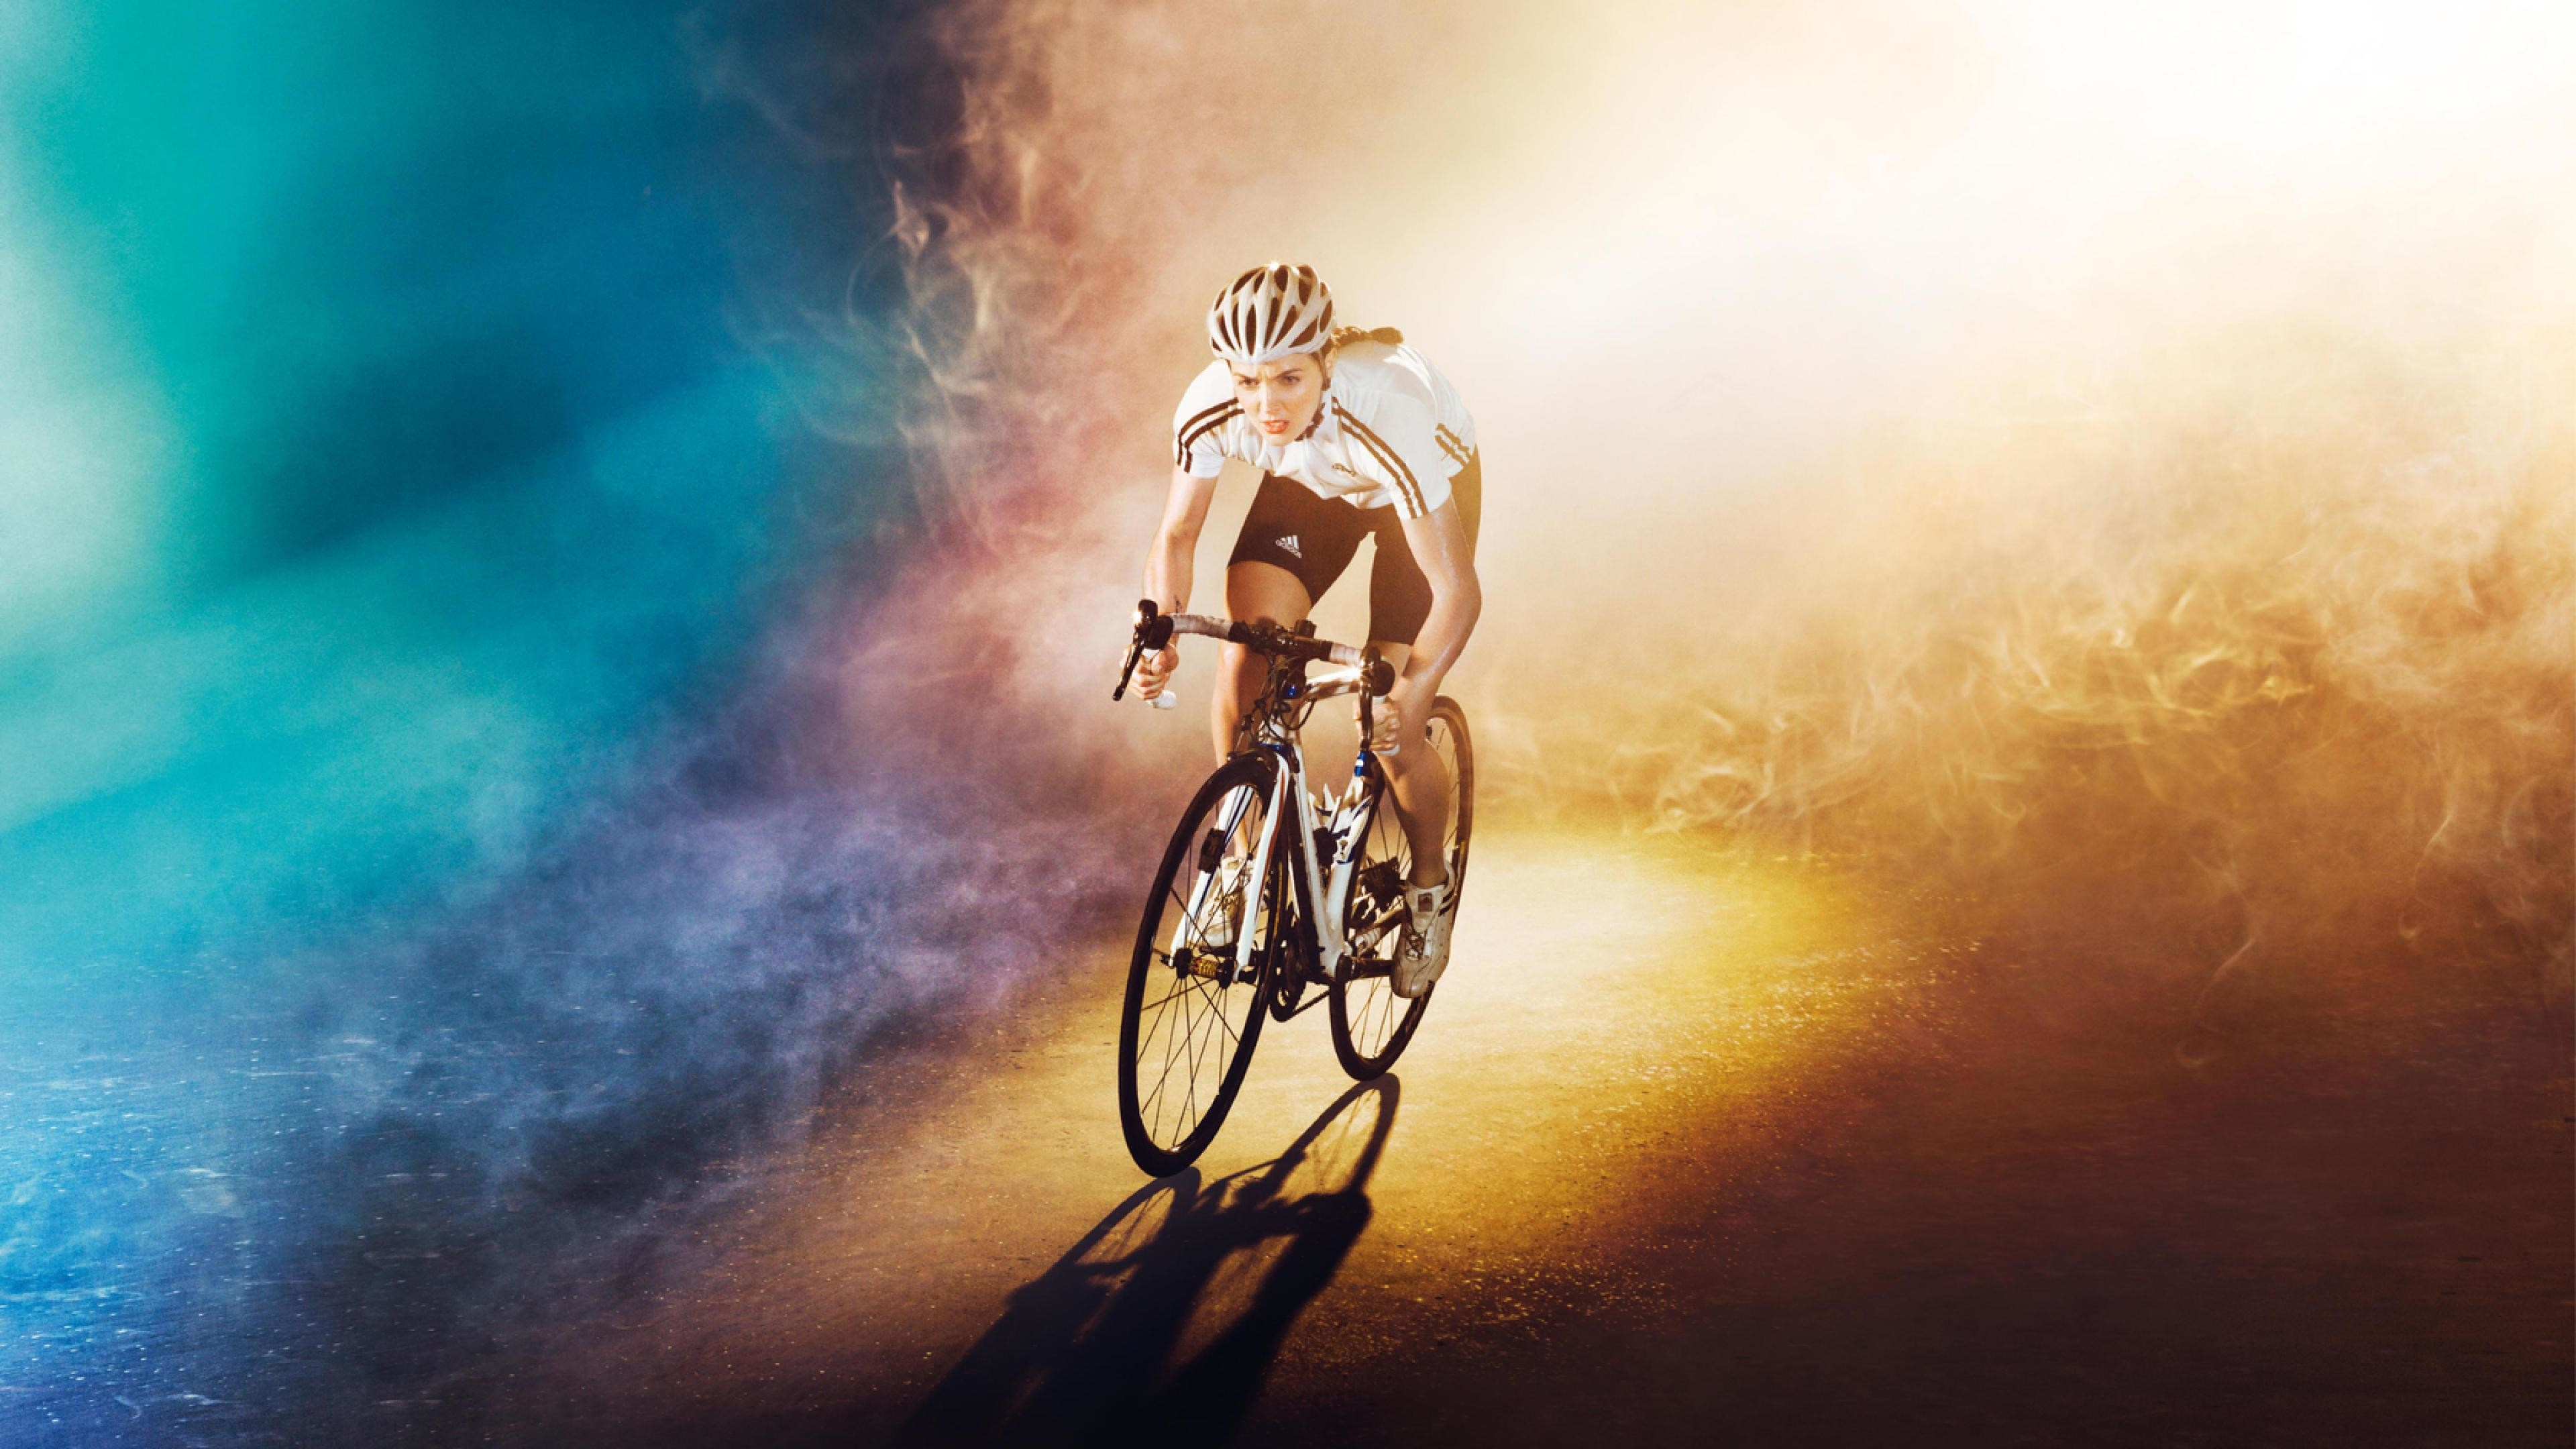 3840x2160 olympiad_bike_bicycle_girl_road_color_light_ultra-HD Wallpapers